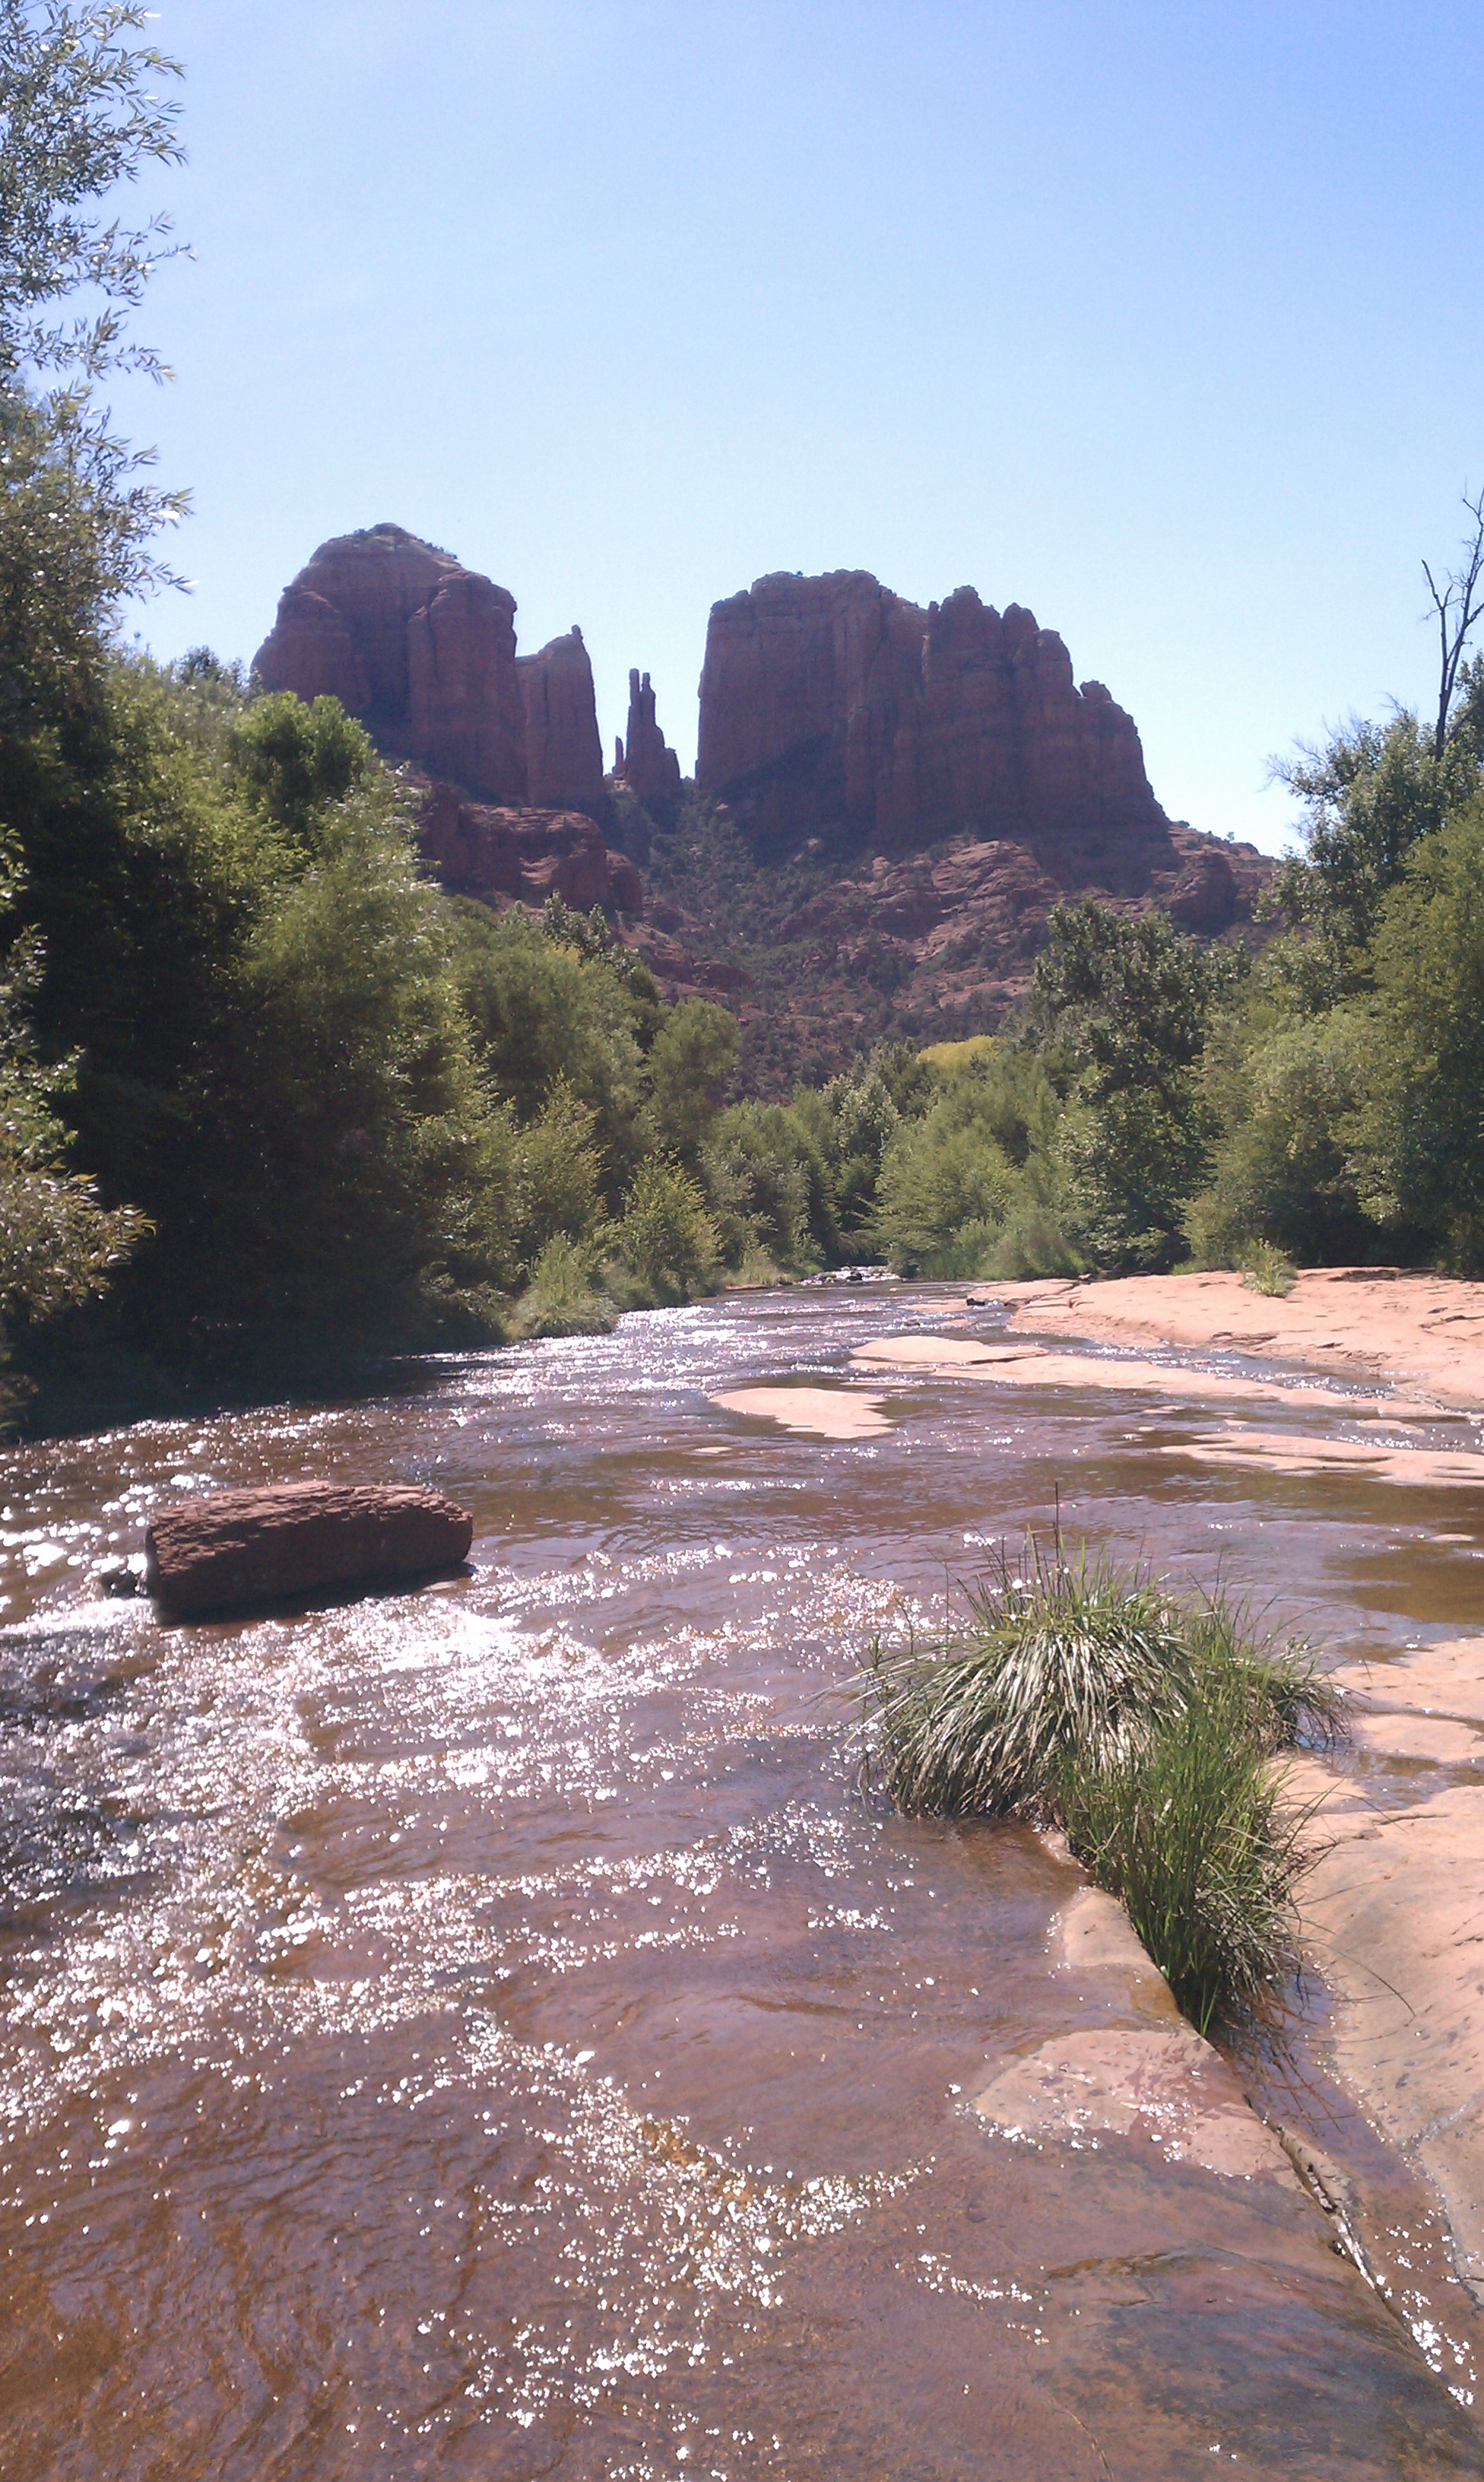 Road Trip From Tucson to Sedona: Relaxing Among the Red Rocks